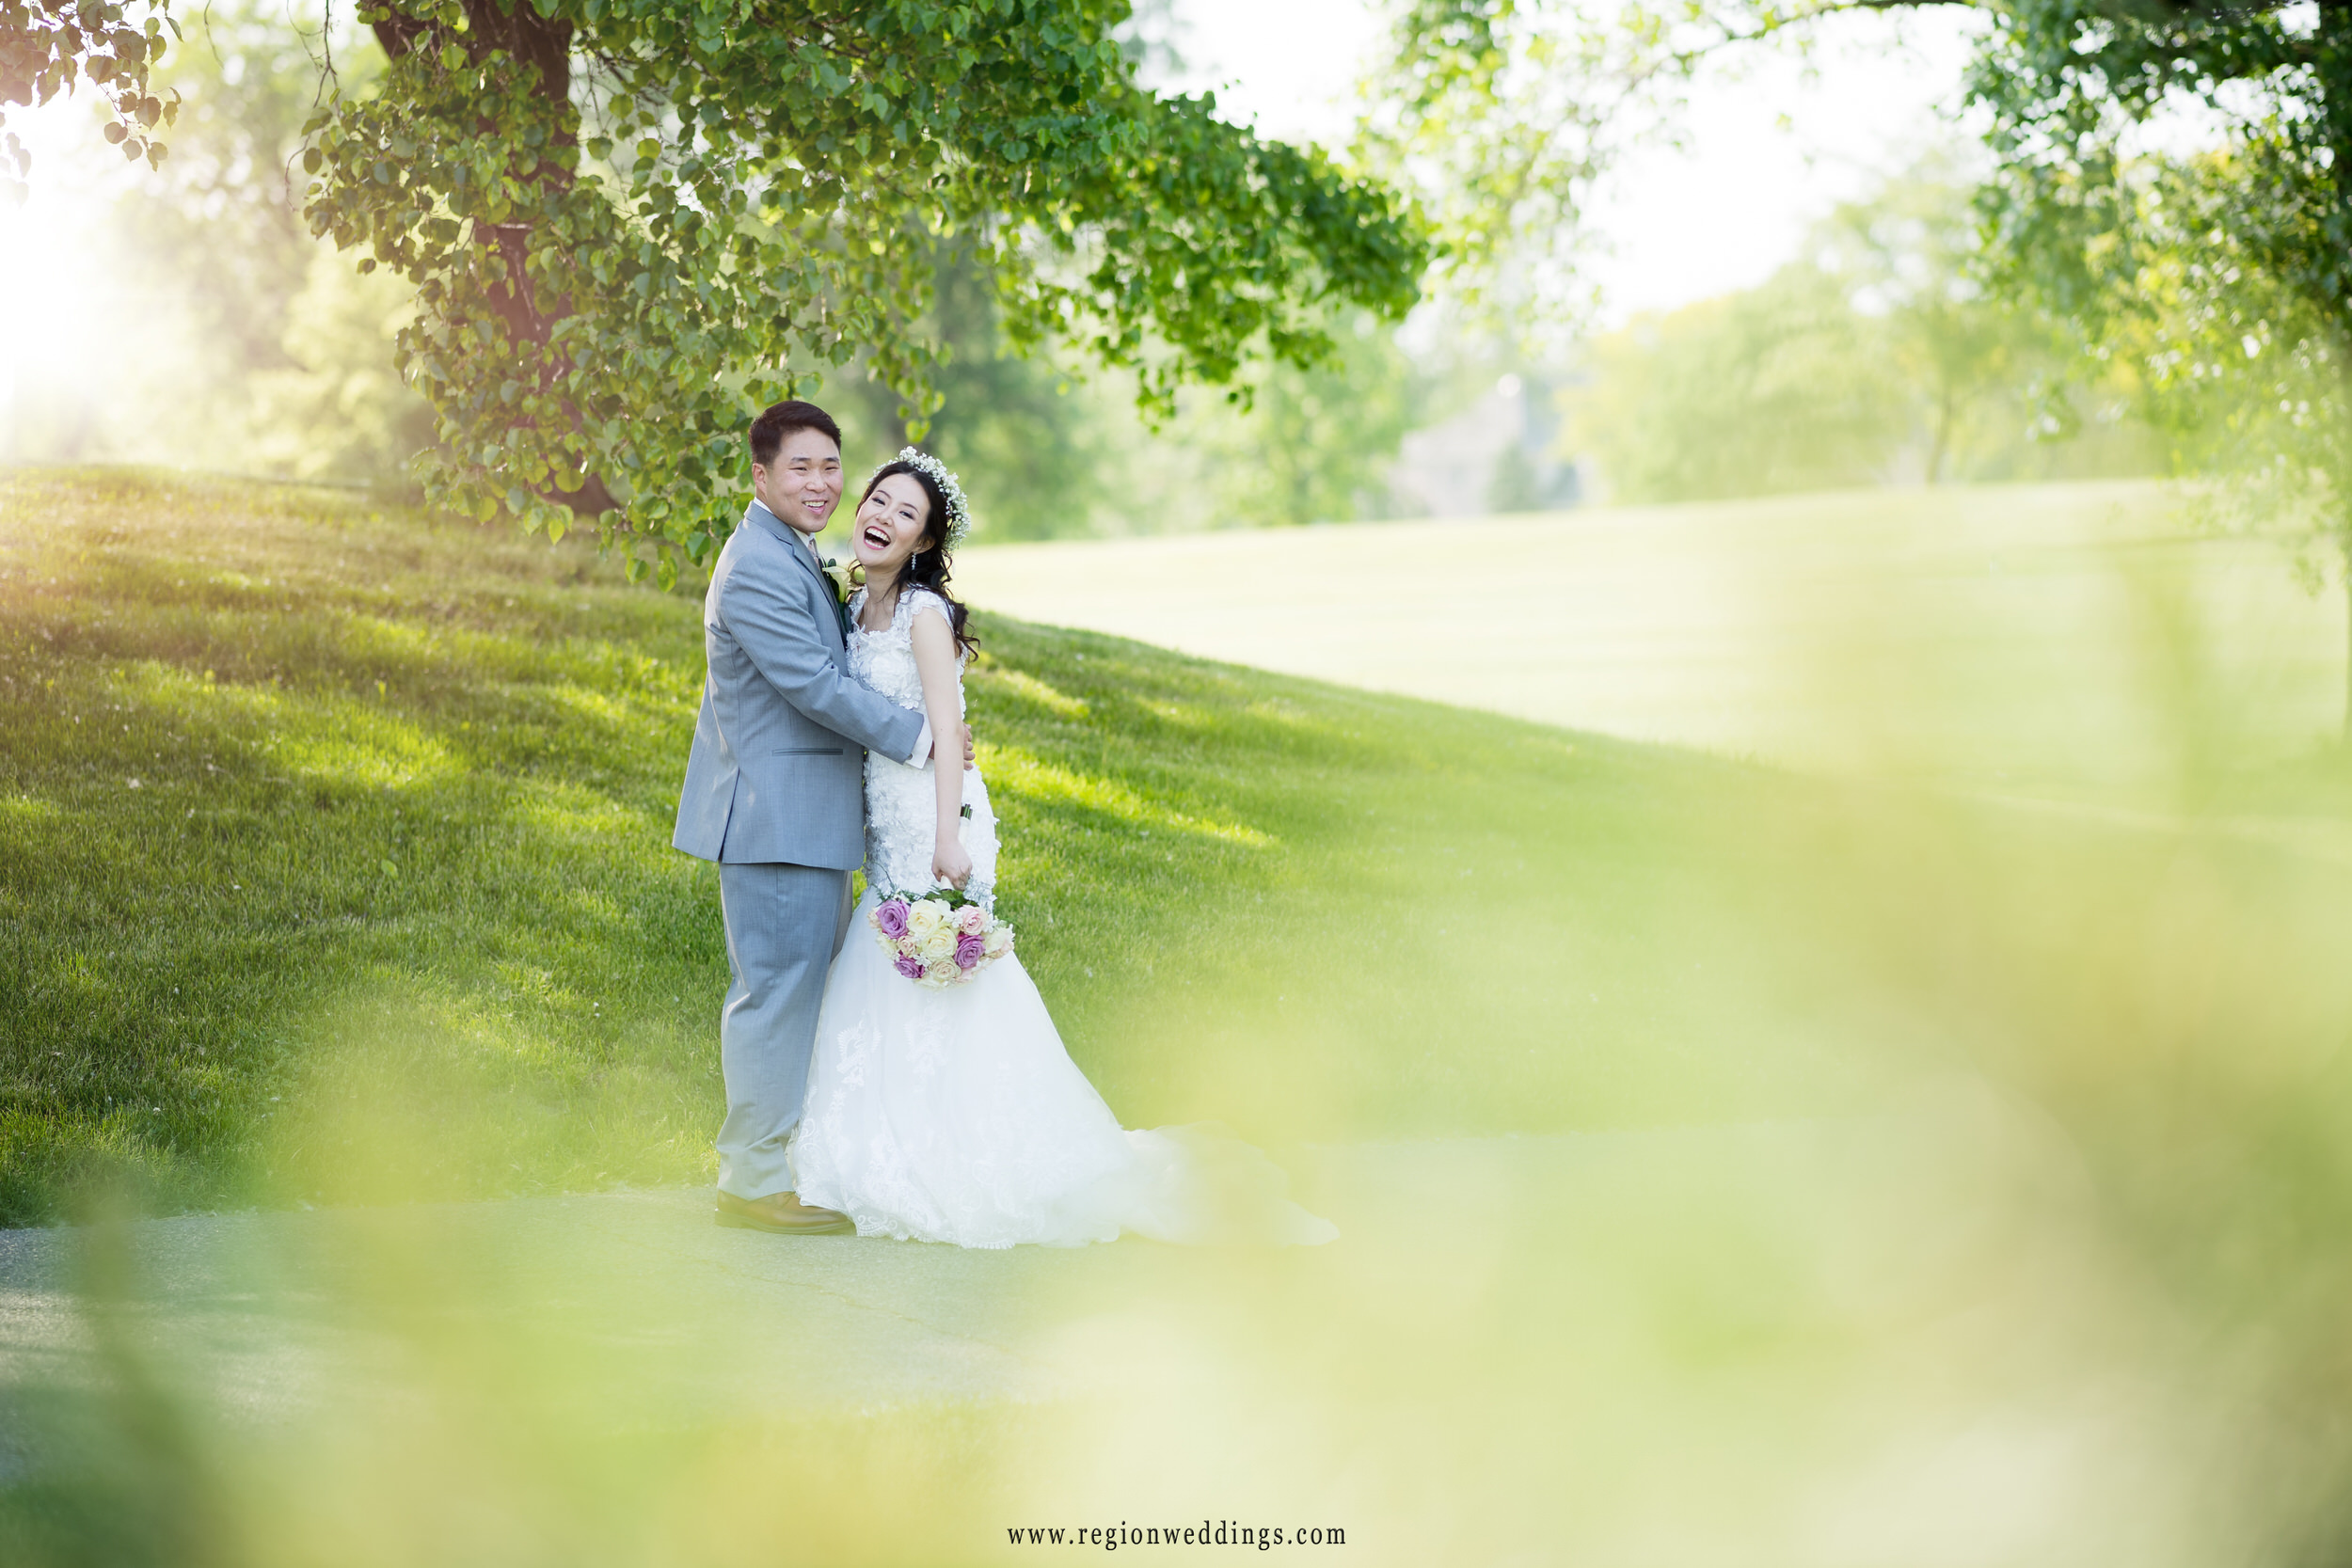 The bride and groom share a laugh at Briar Ridge Country Club.